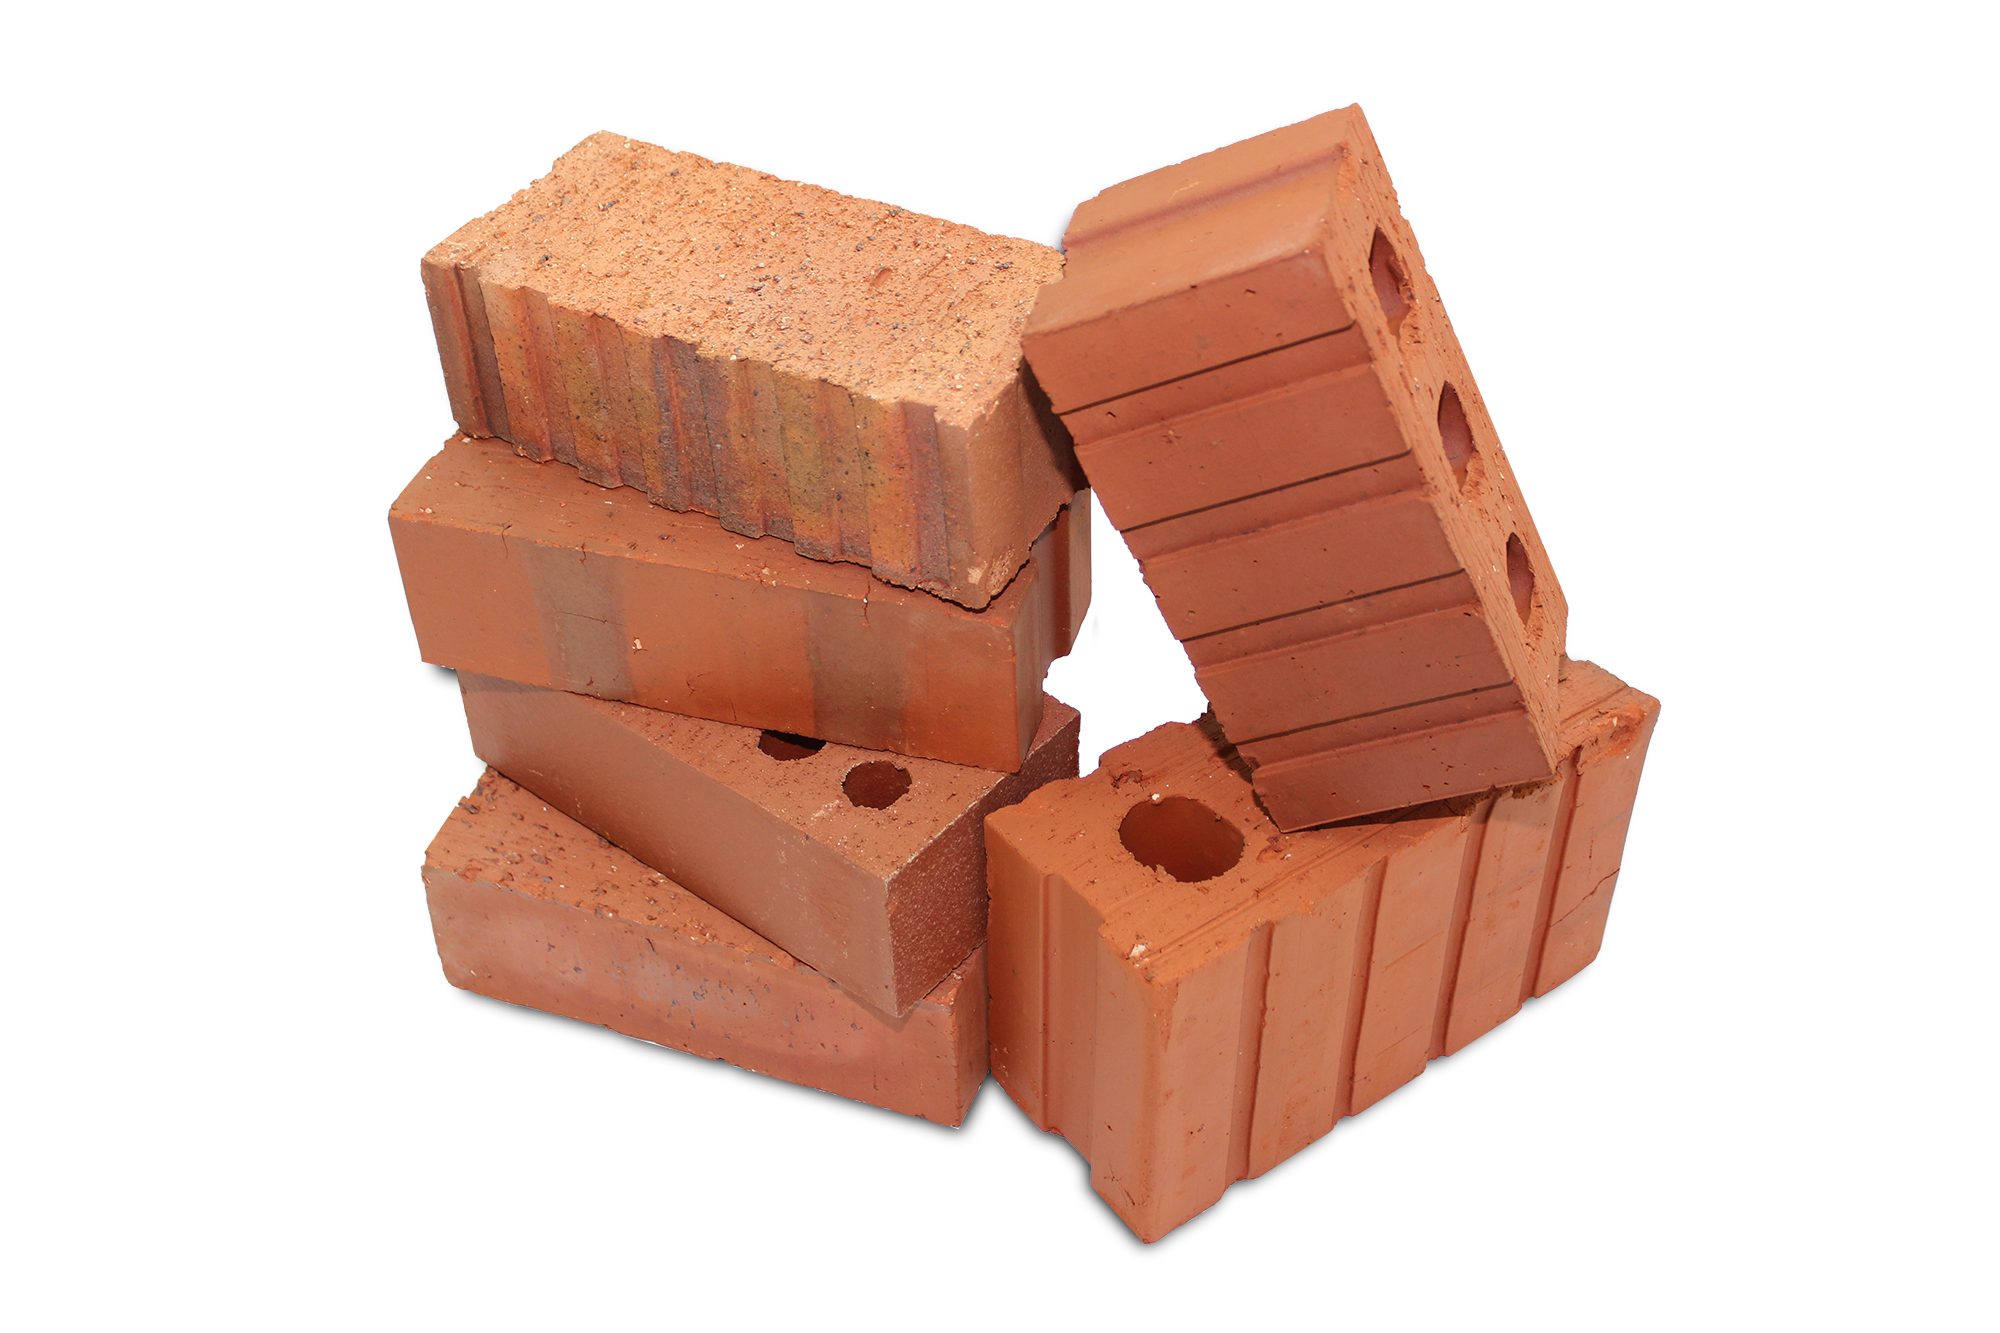 Red Clay Bricks : Building resources industries pte ltd red clay brick